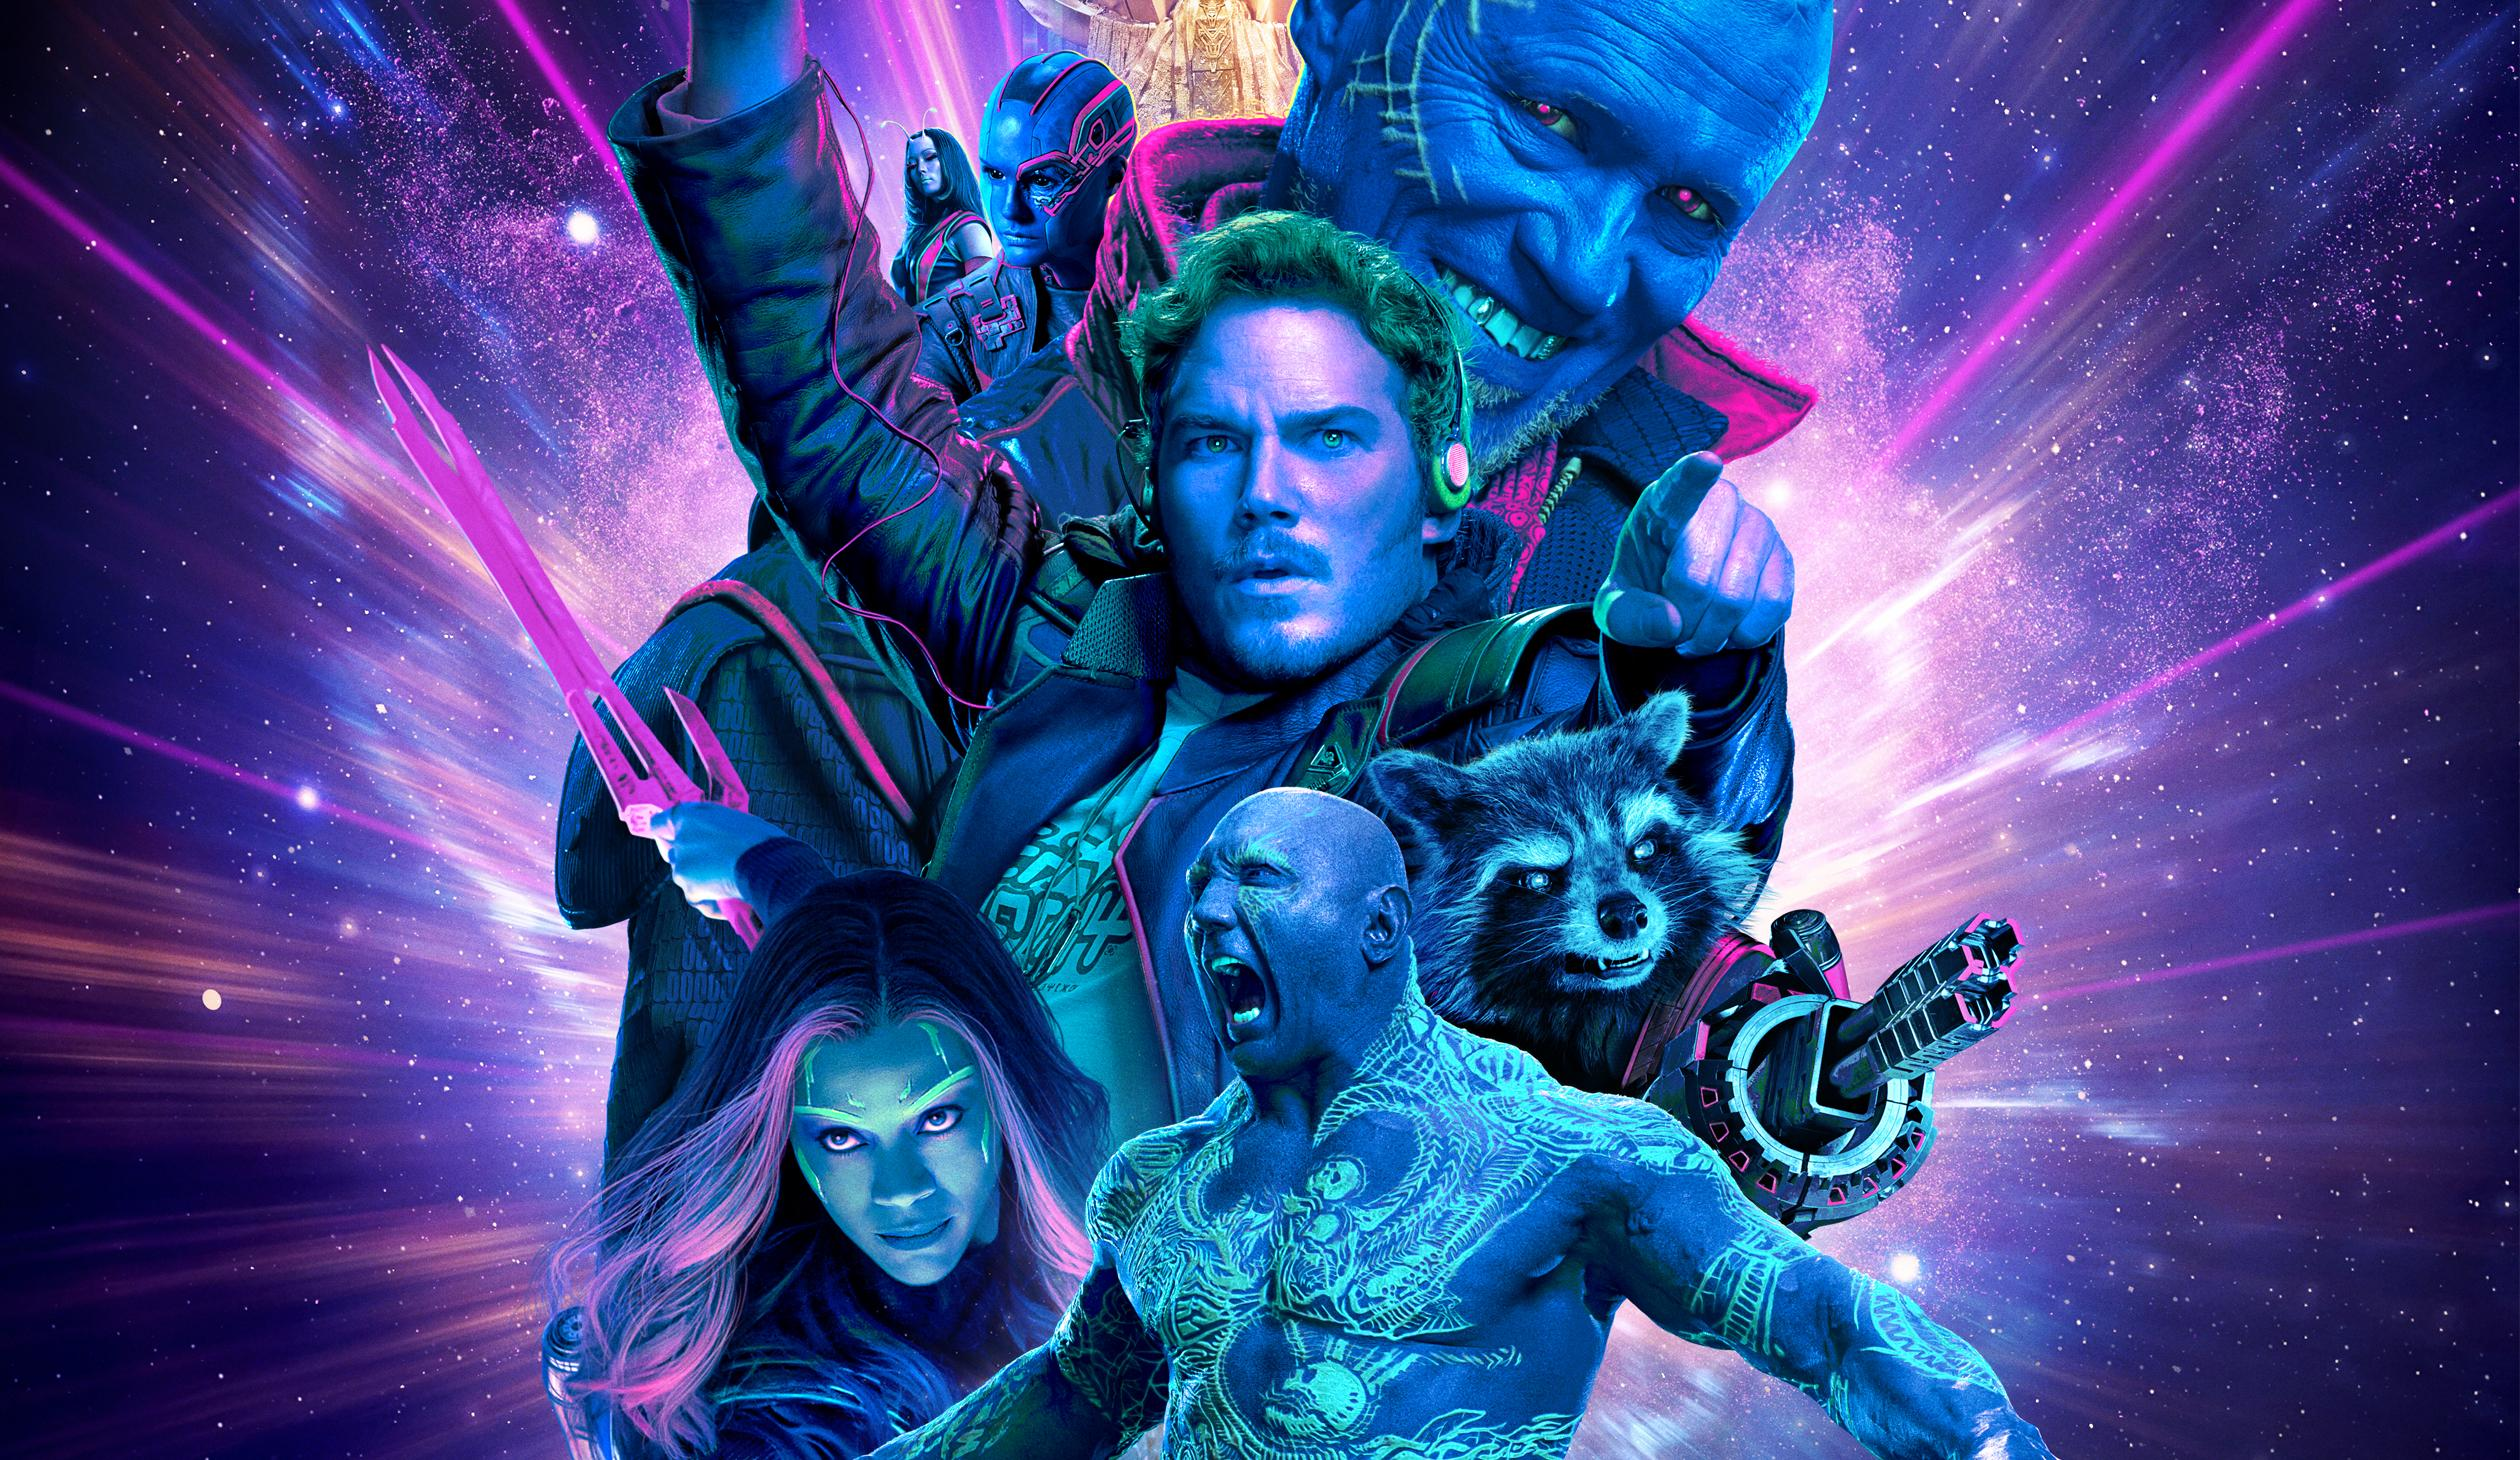 Guardians Of The Galaxy Vol 2 Wallpaper: Guardians Of The Galaxy Vol 2 Imax, HD Movies, 4k